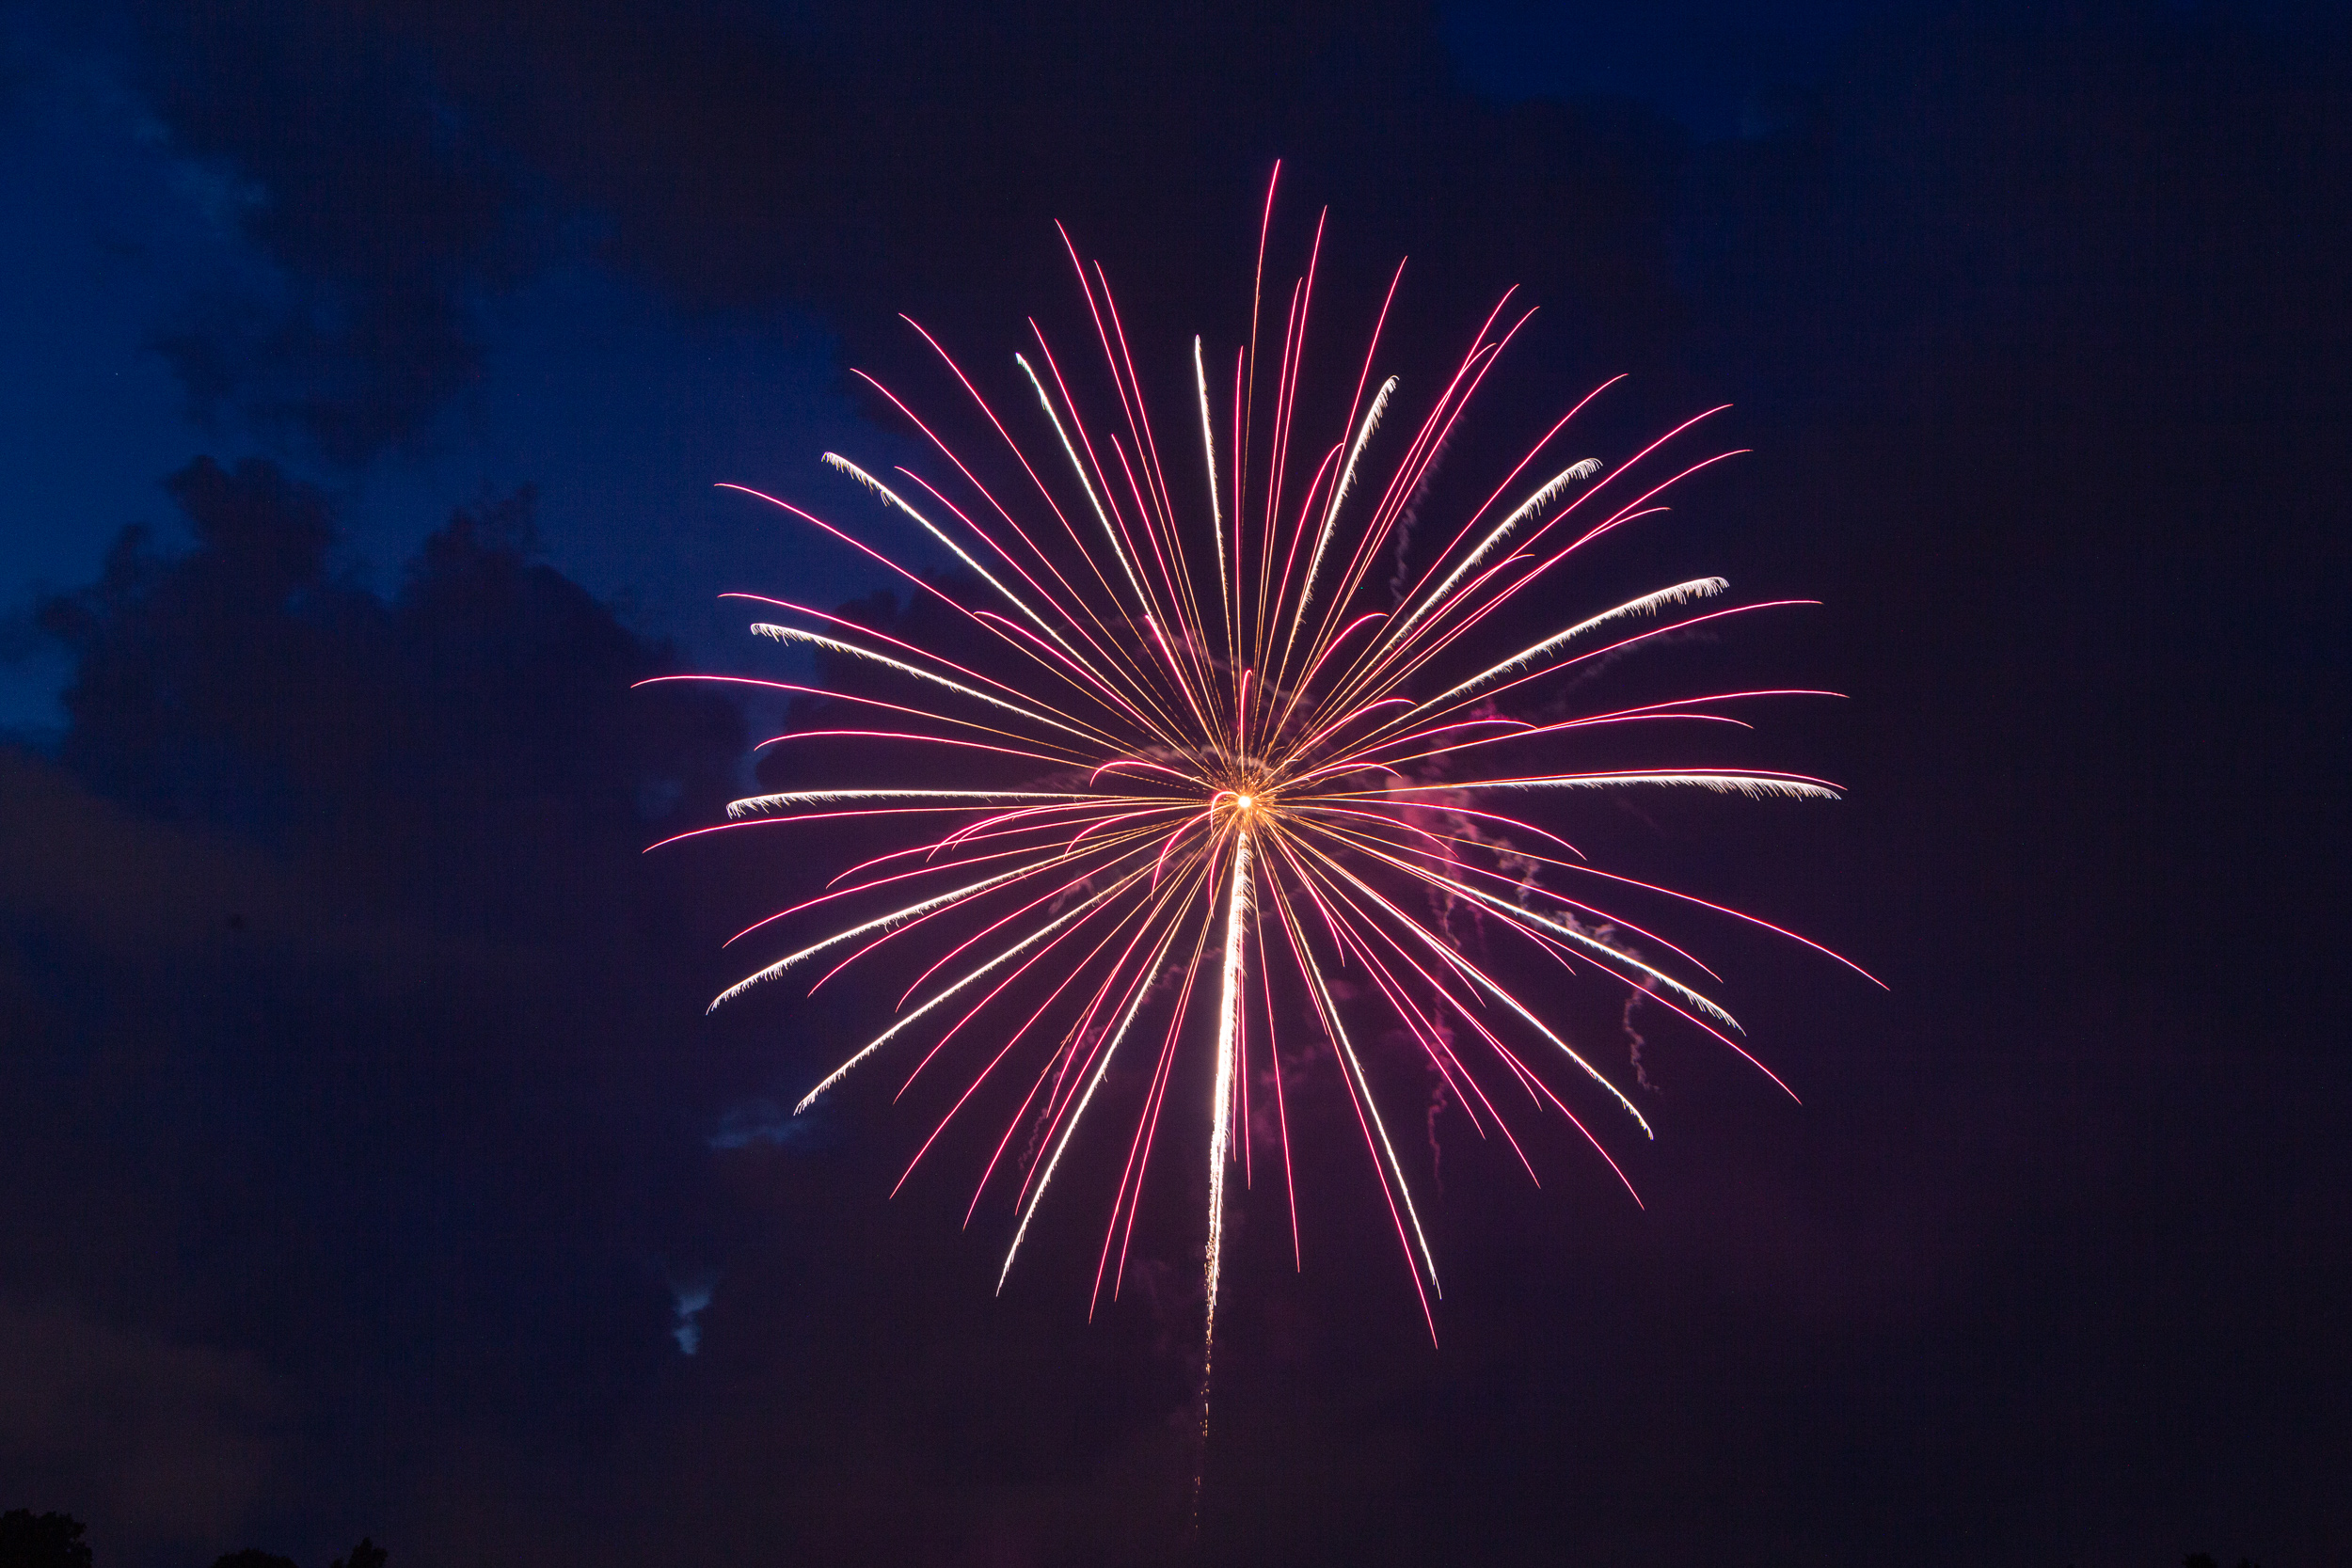 July 4th fireworks at Boone NC 2019-07-04-004.jpg